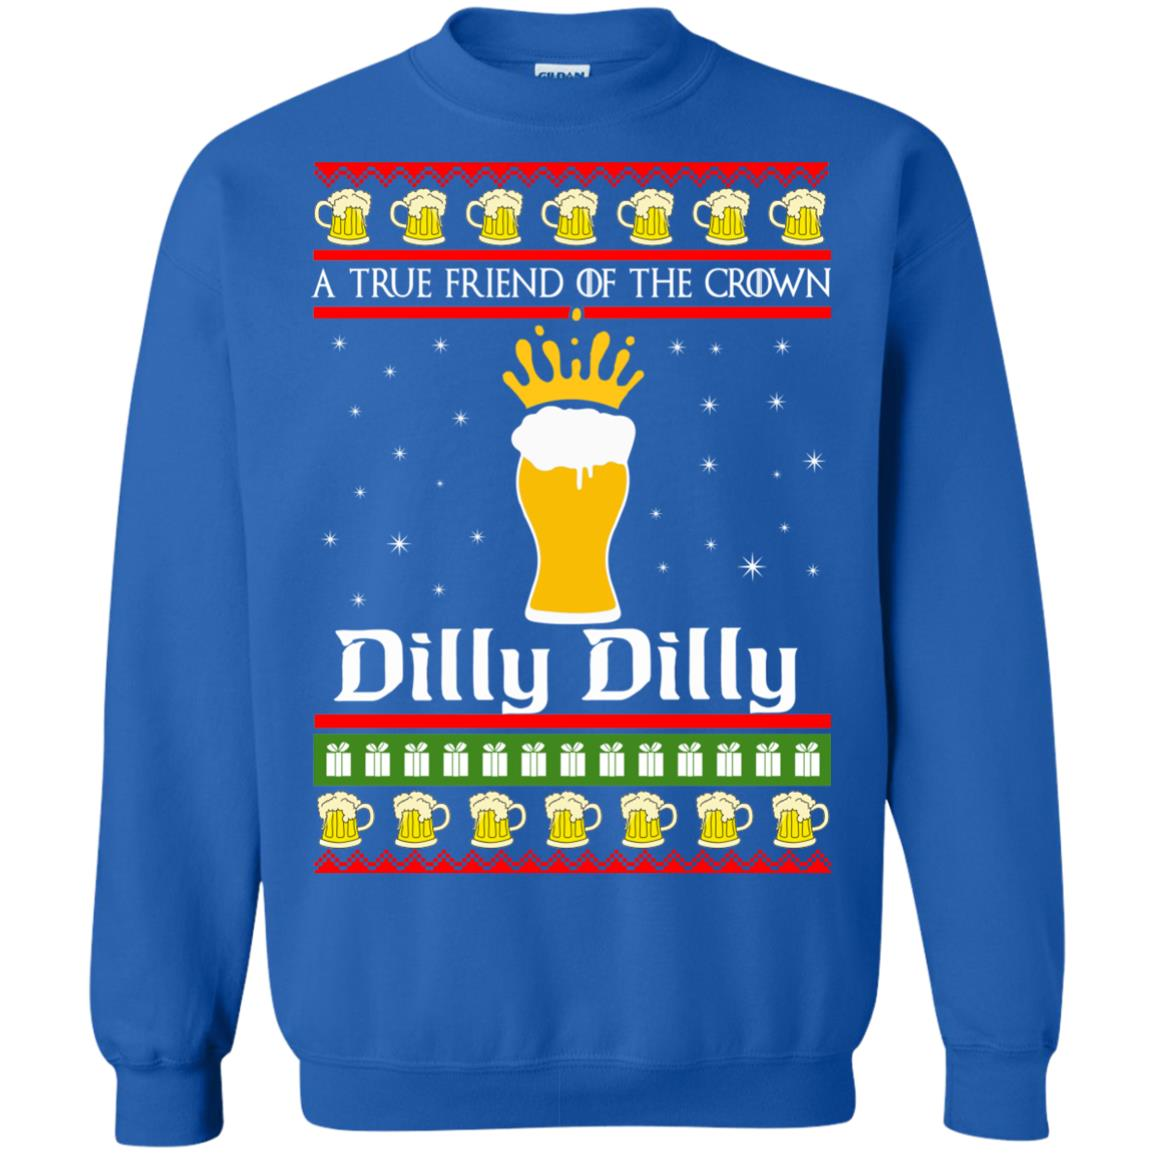 image 6328 - A True Friend Of The Crown Dilly Dilly Christmas Sweater, Hoodie